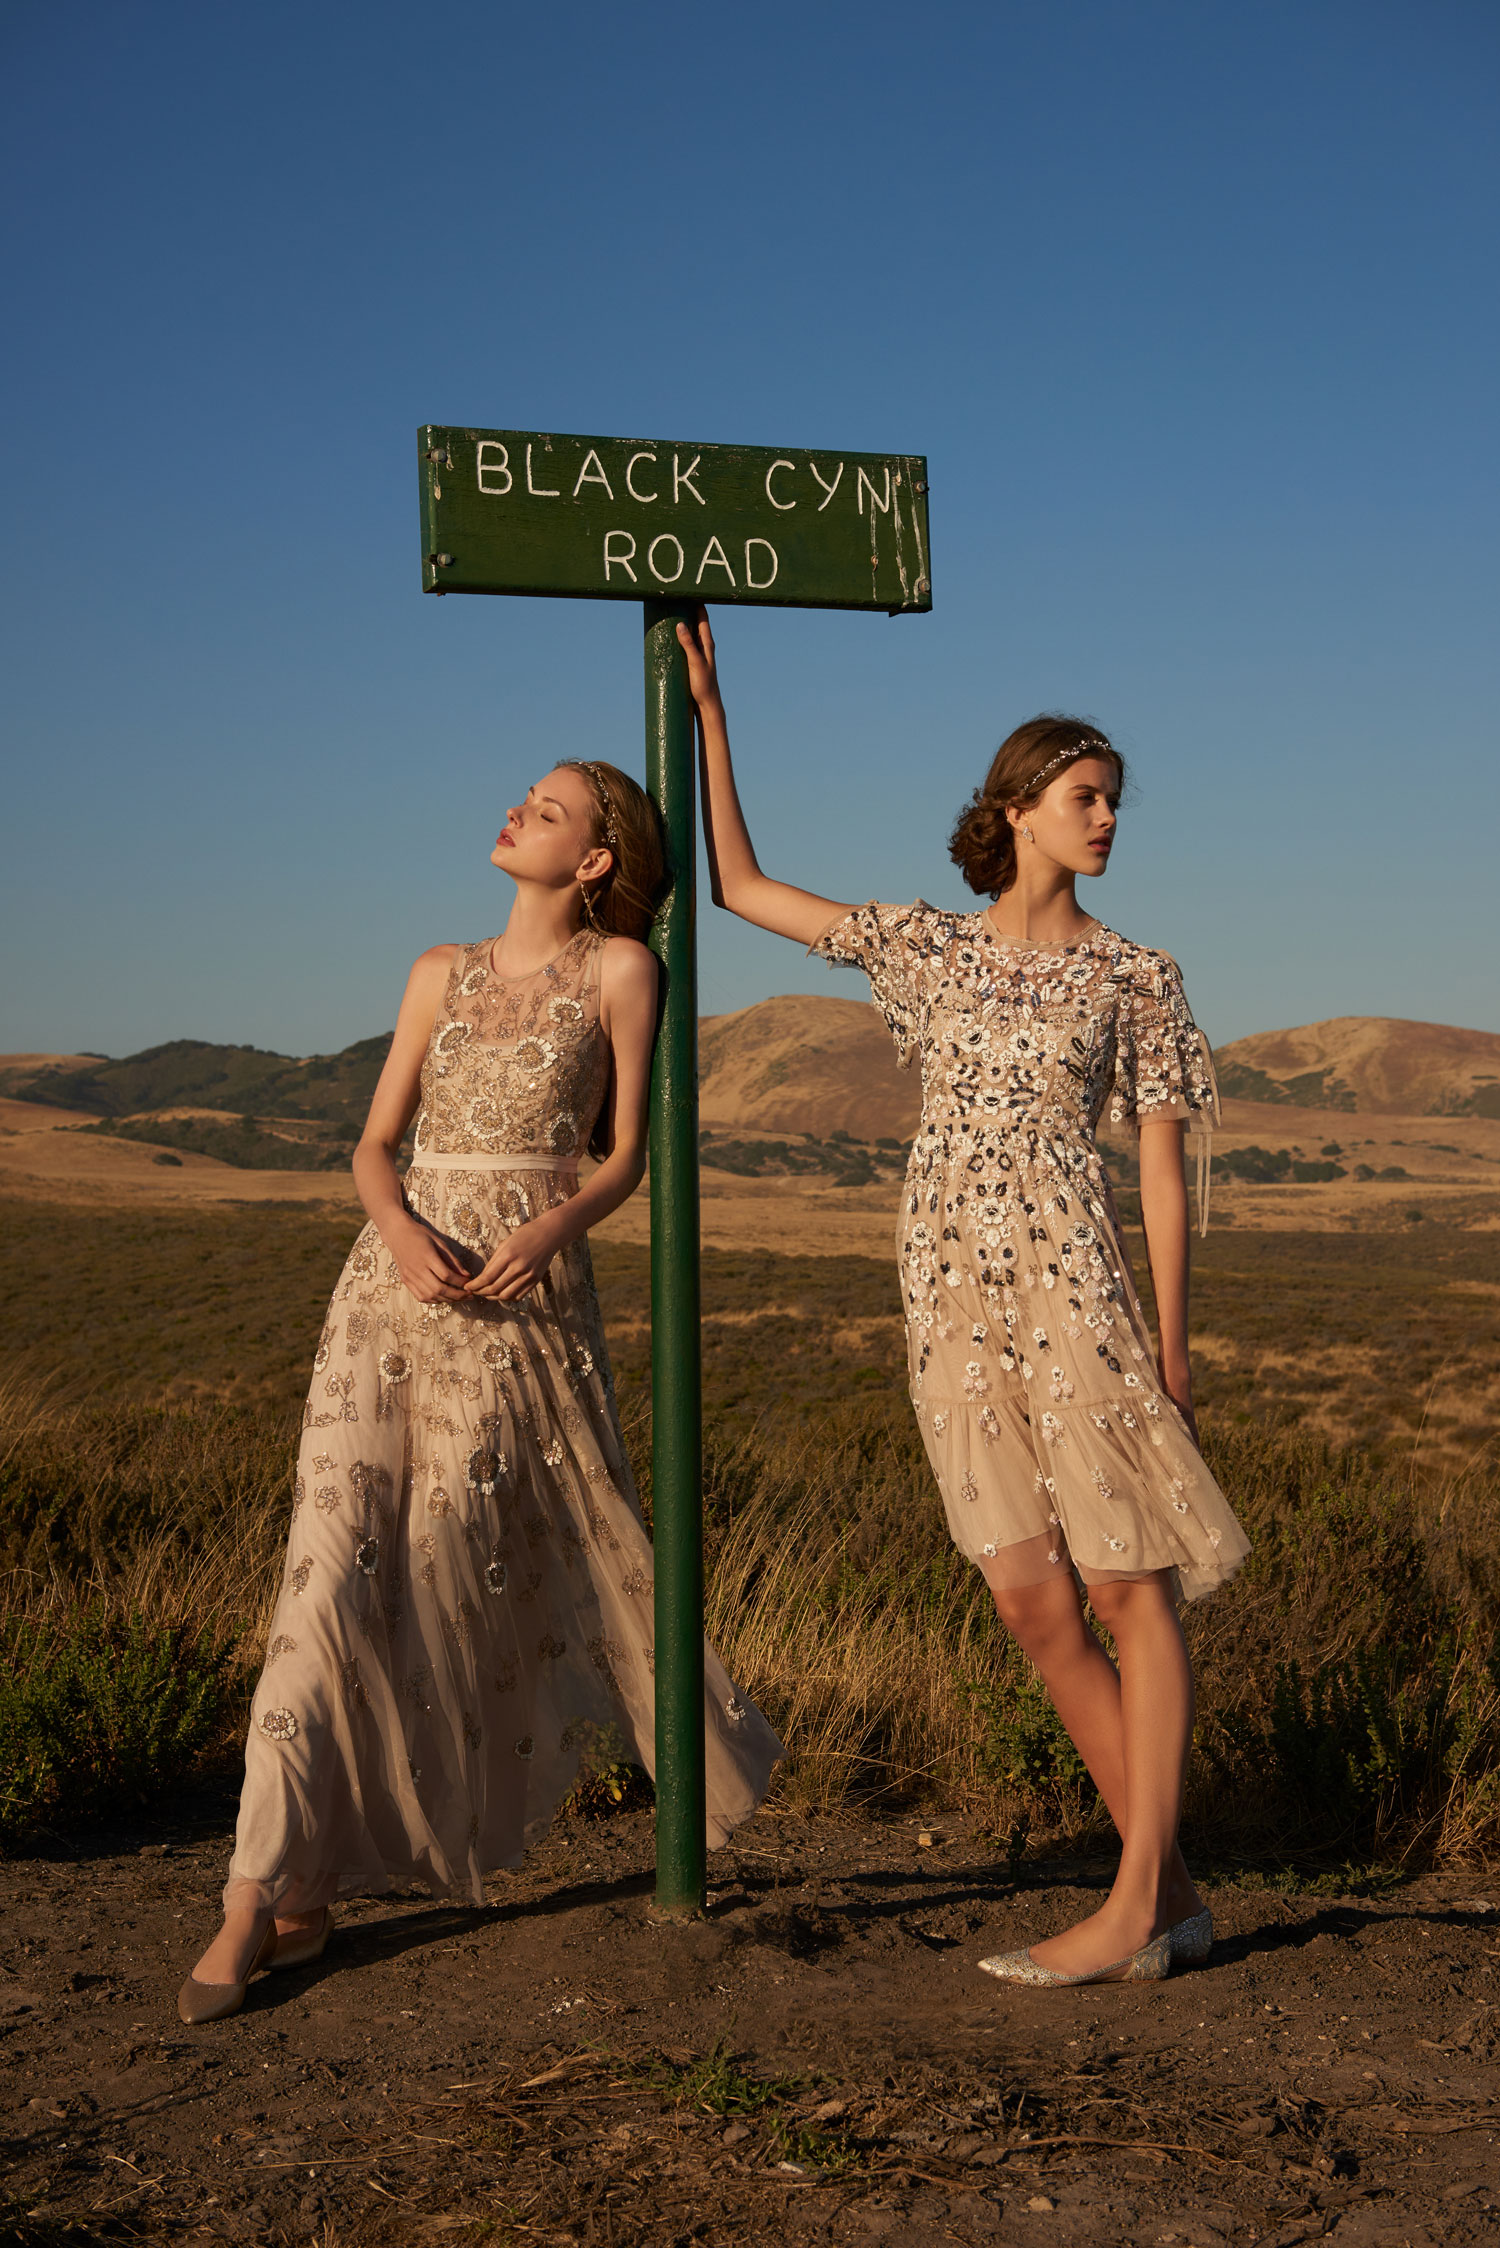 BHLDN americana collection verdure dress and majorca dress beaded styles buy now shop